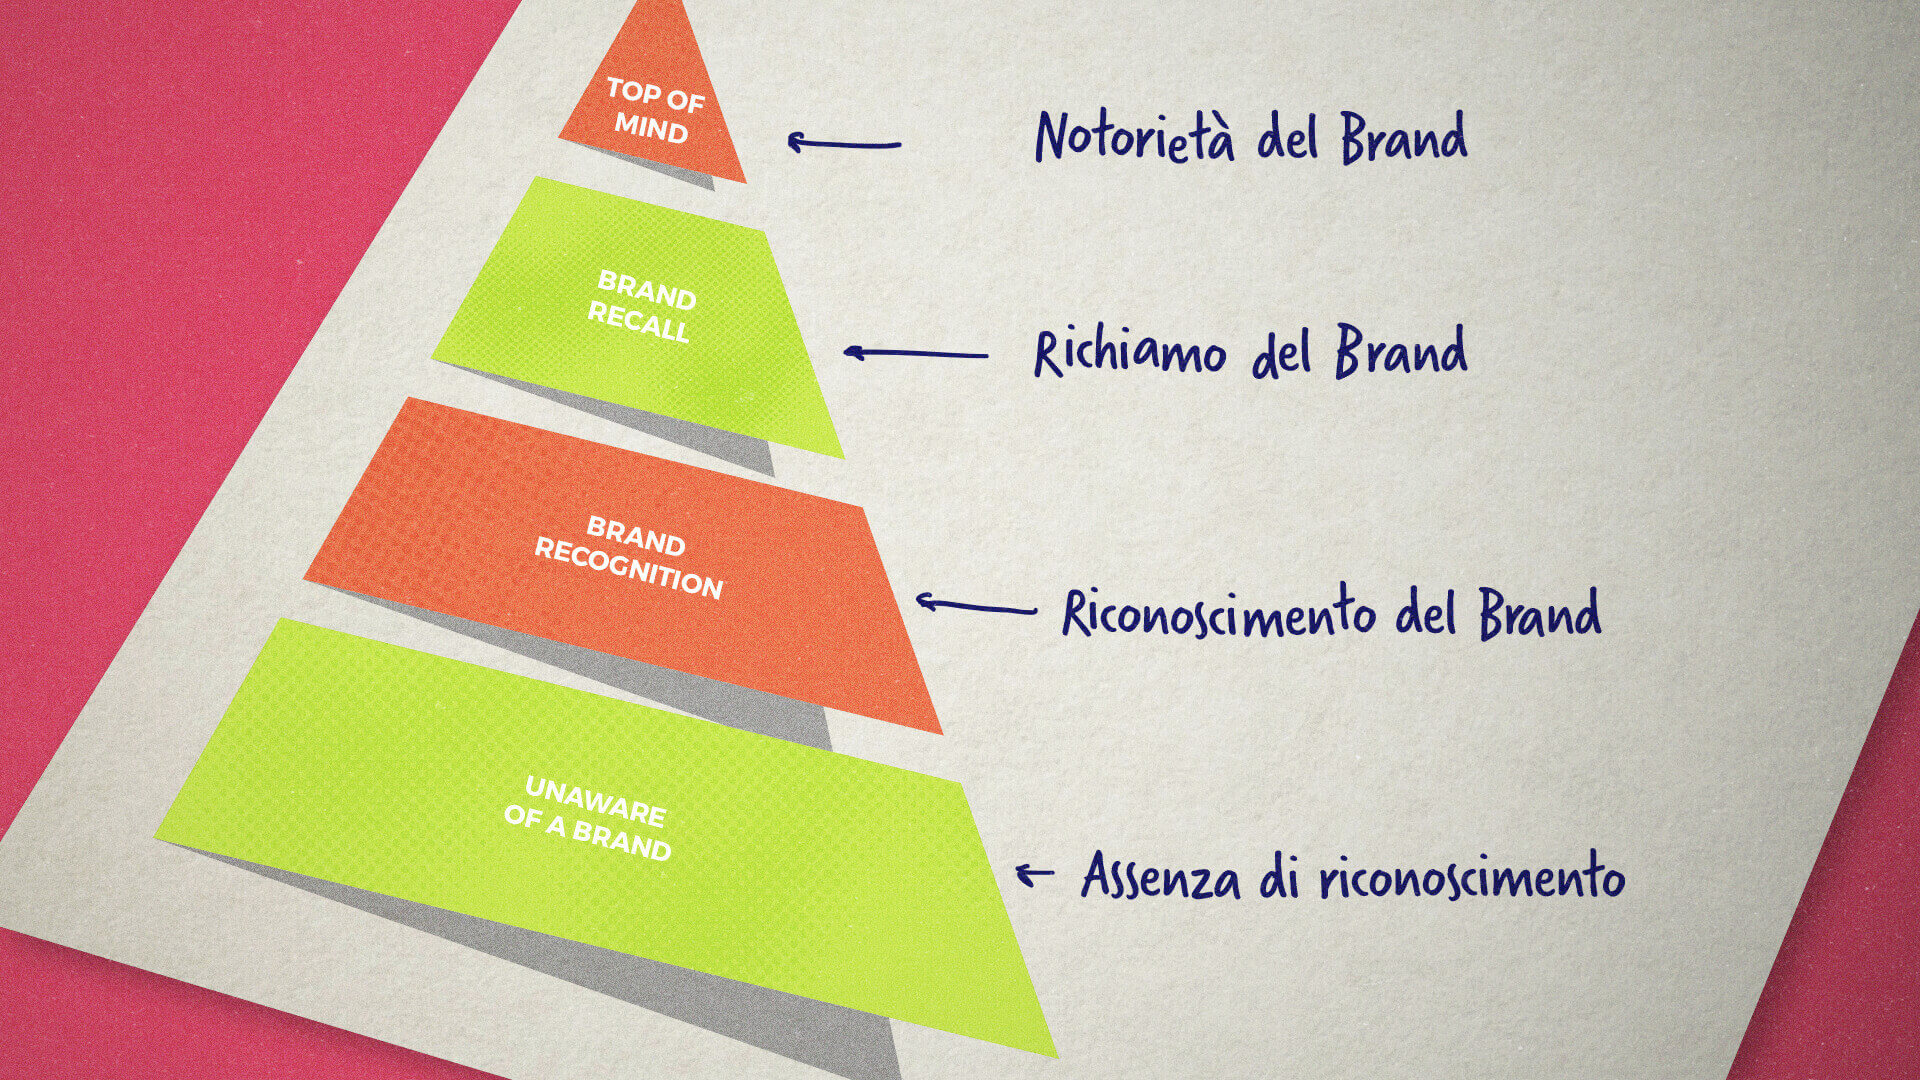 brand awareness come si misura